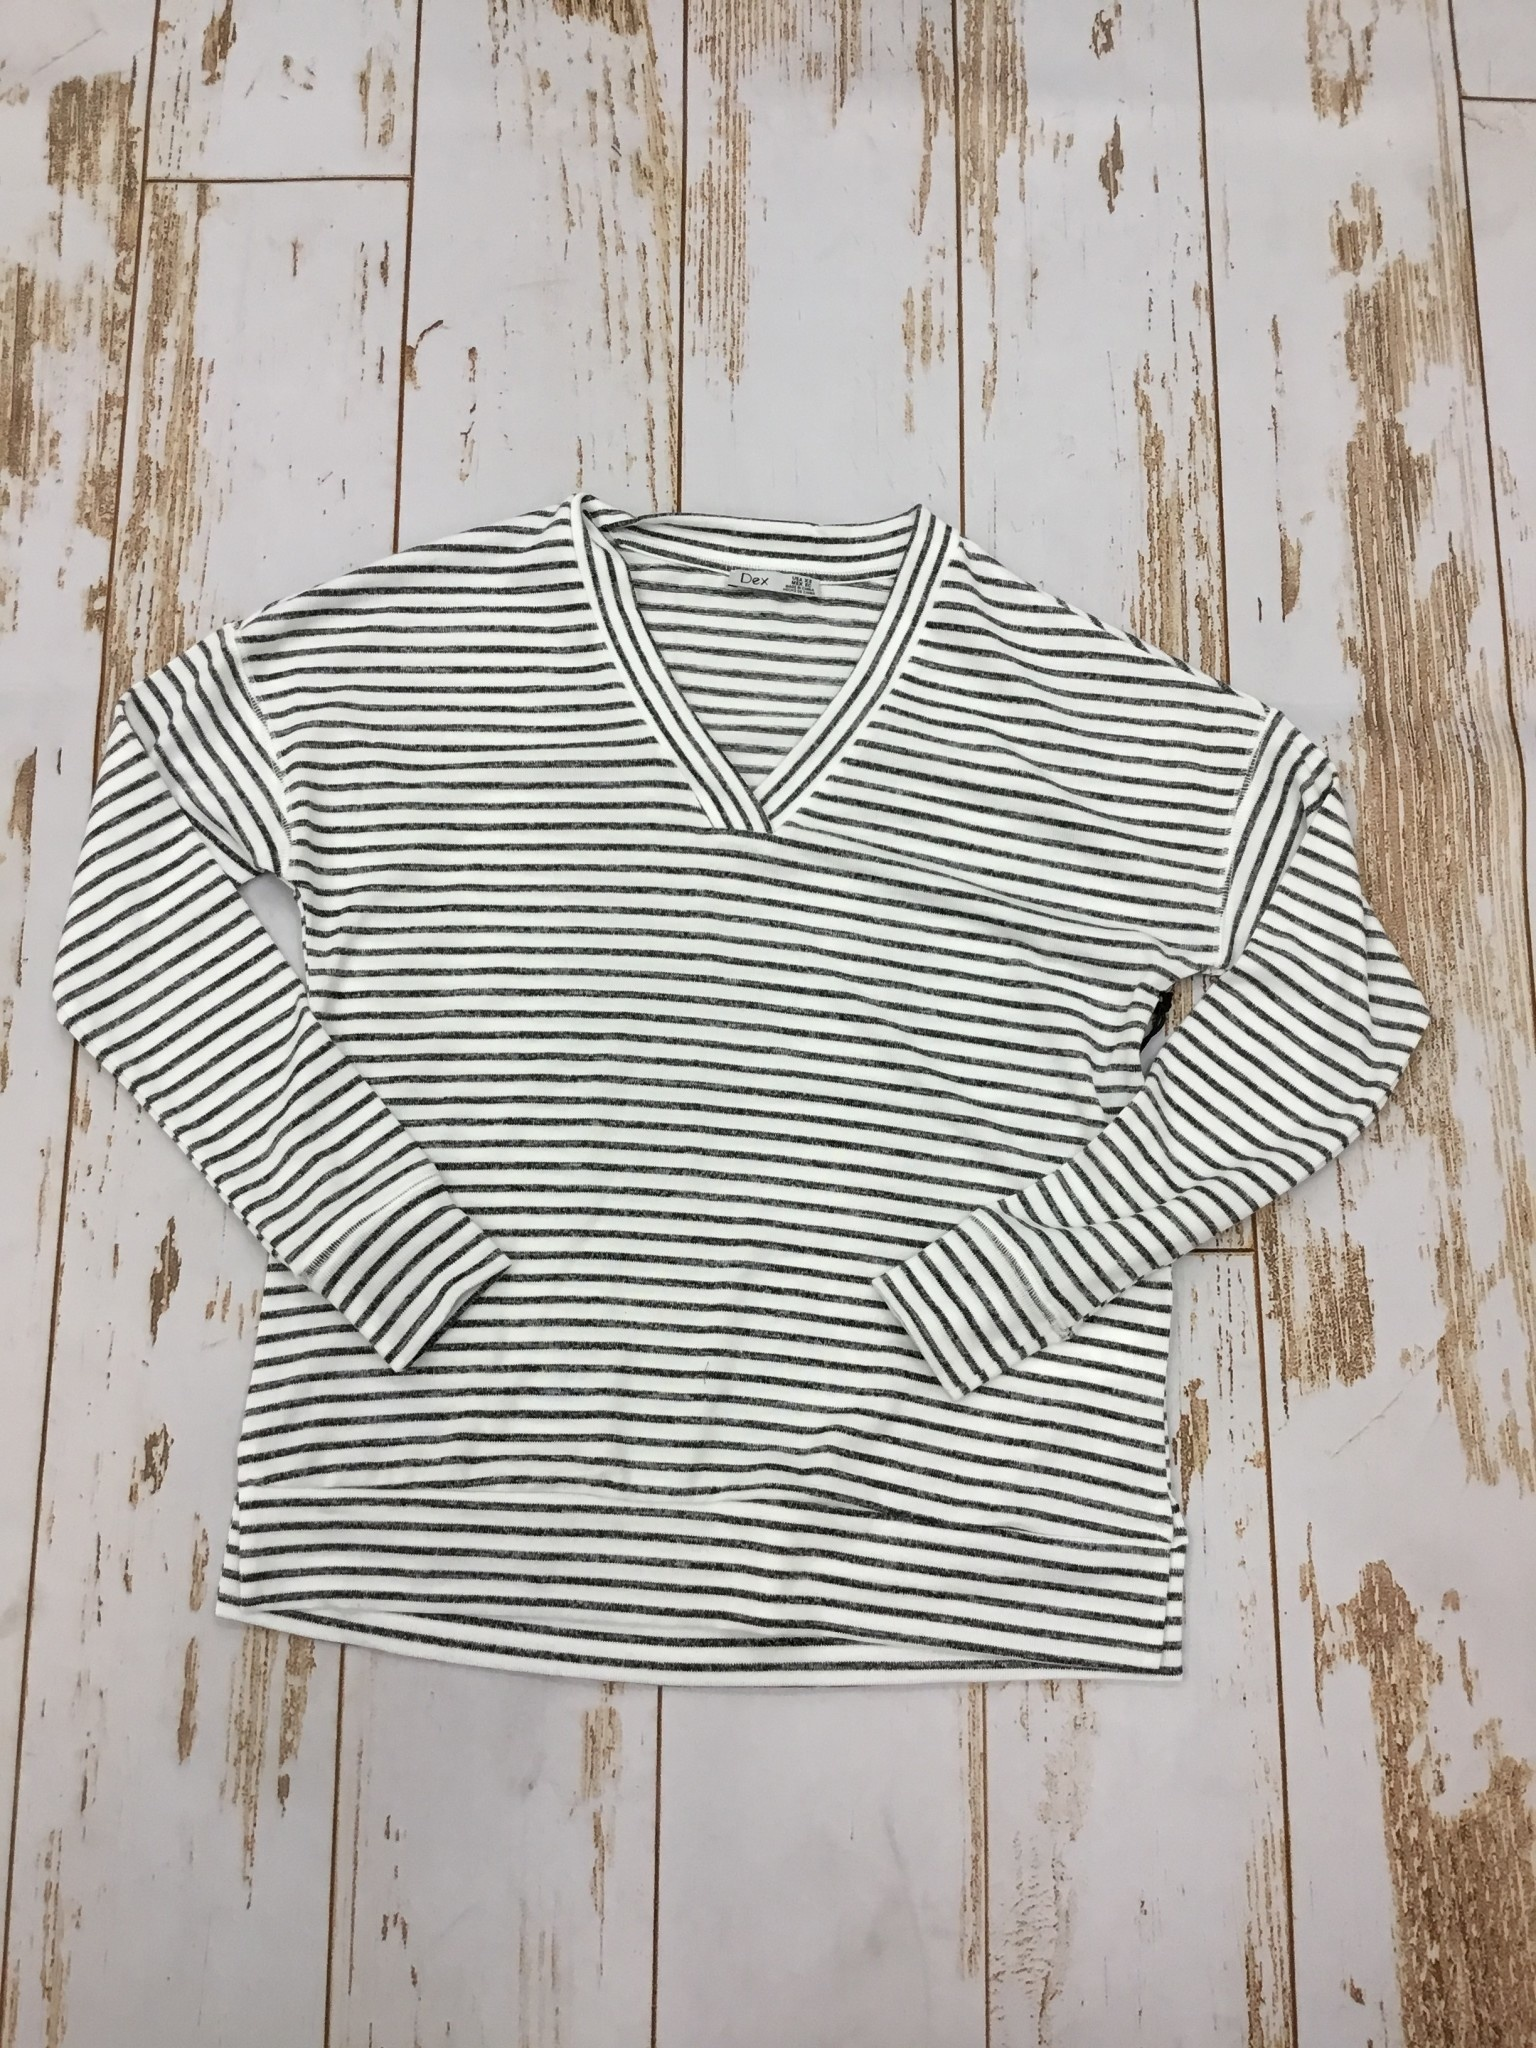 Dex Long Sleeve VNeck Striped Tee in Navy and White